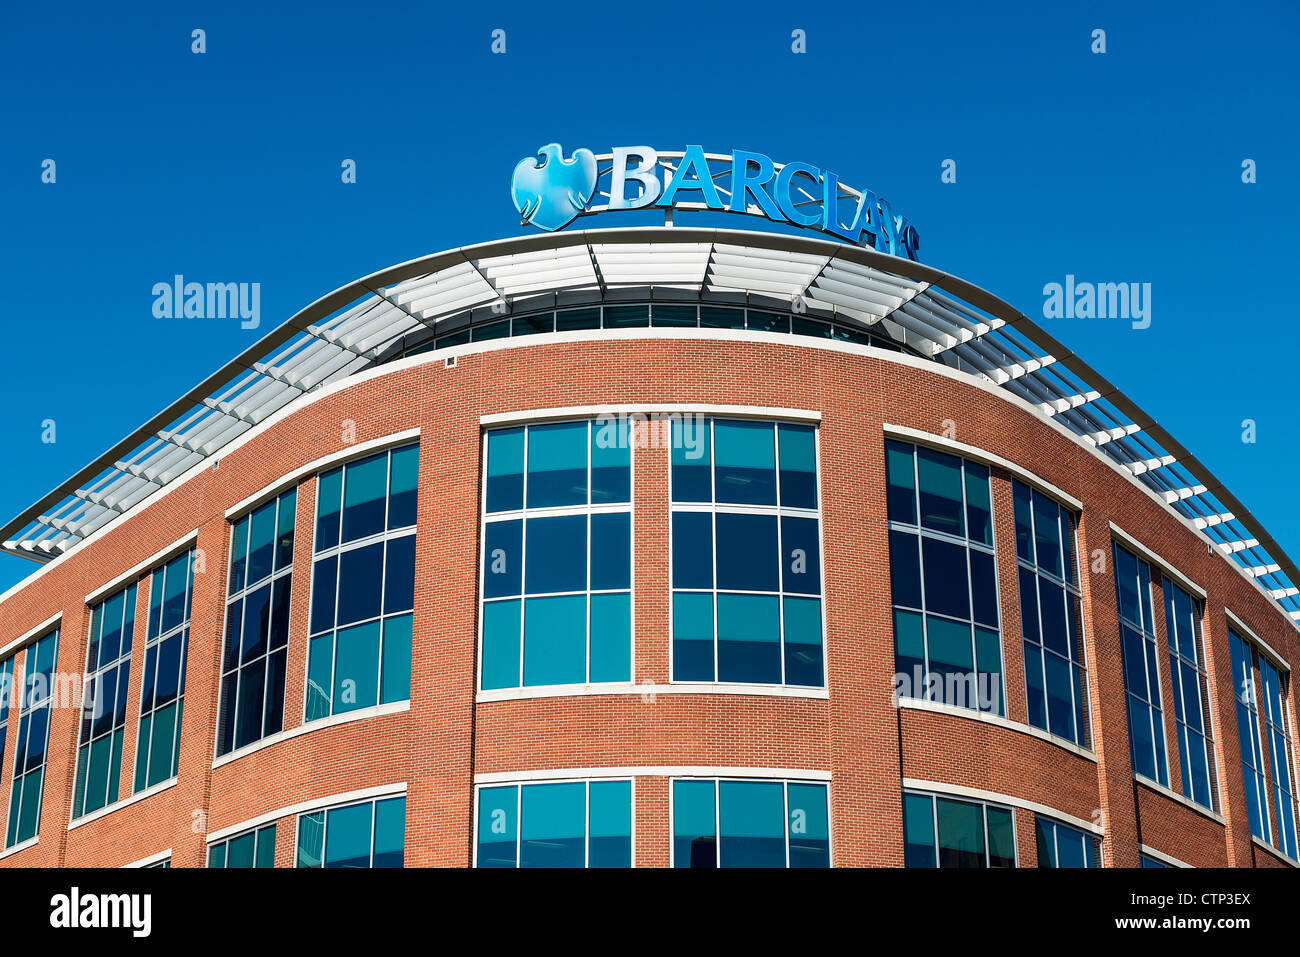 Barclays corporate offices, Wilmington, Delaware, USA - Stock Image